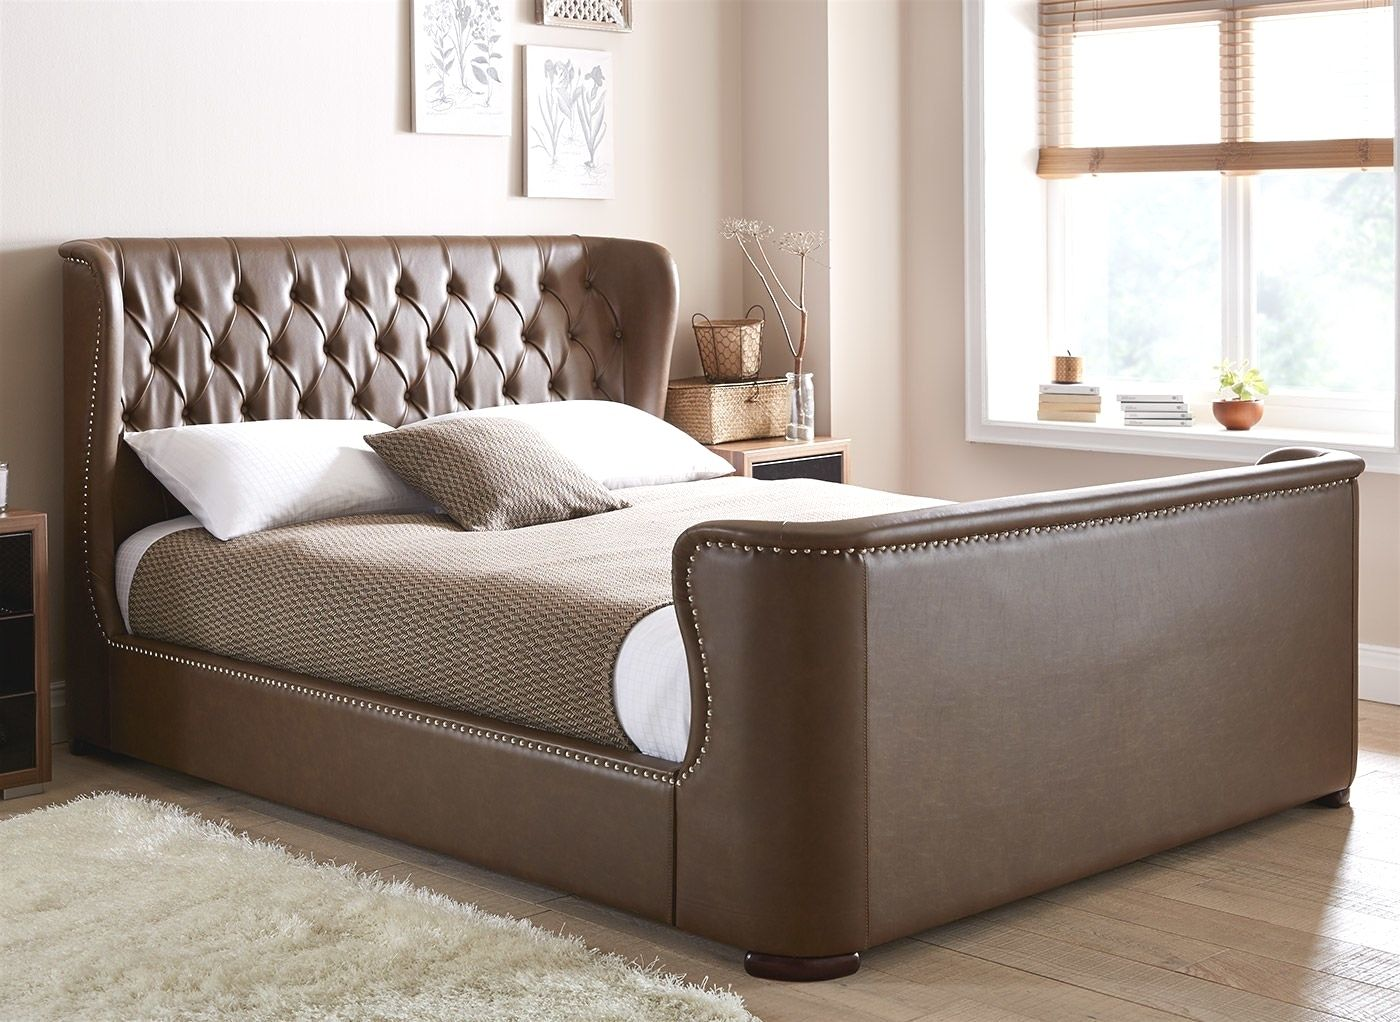 leather bed sheets design 2019